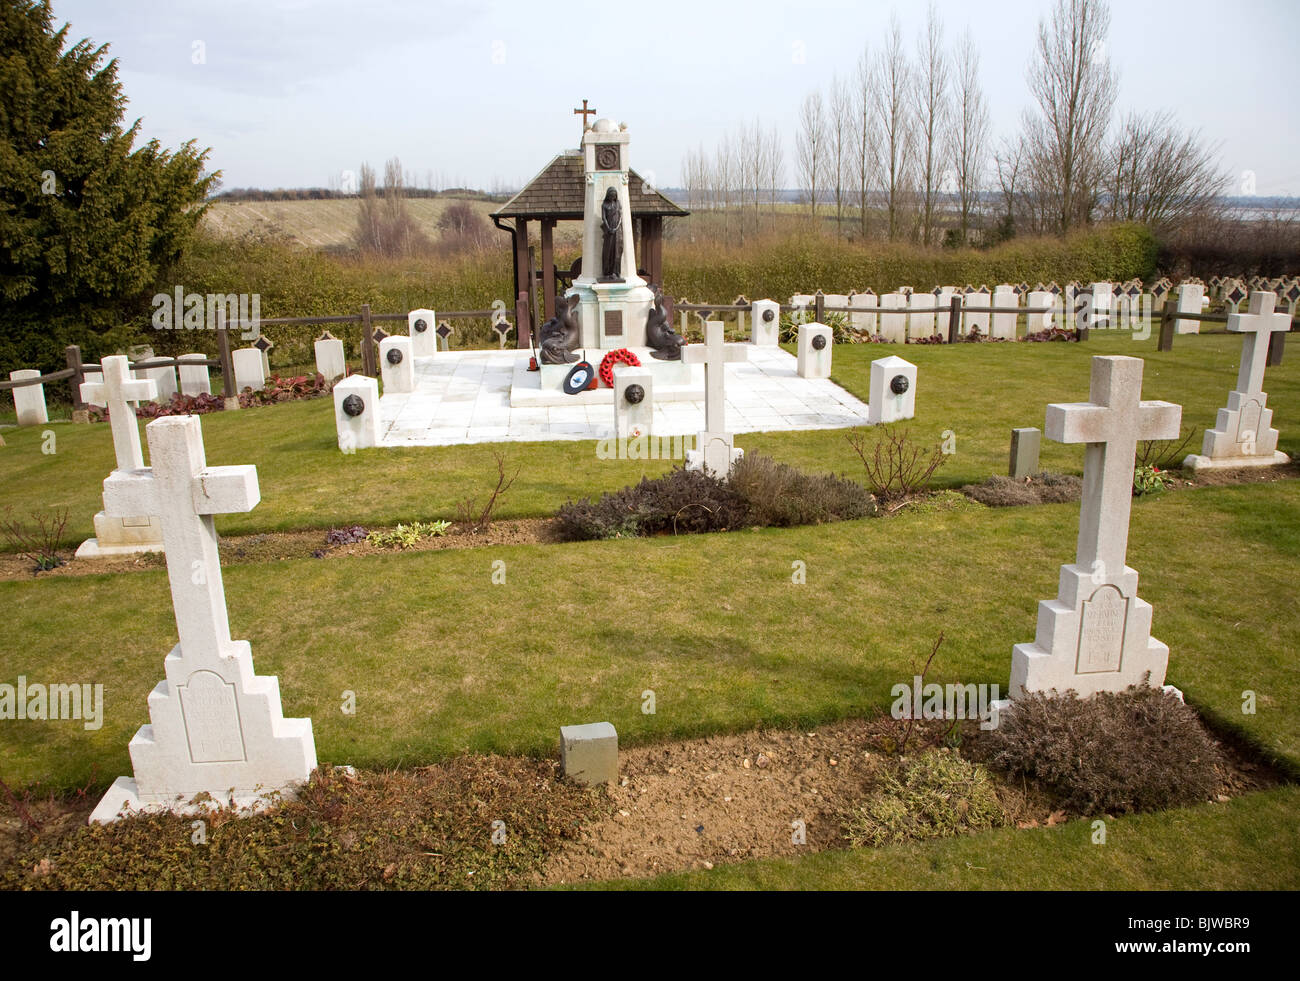 Pre 1940 Naval burial ground, this section for submariners killed in First World war, Naval cemetery, Shotley, Suffolk Stock Photo